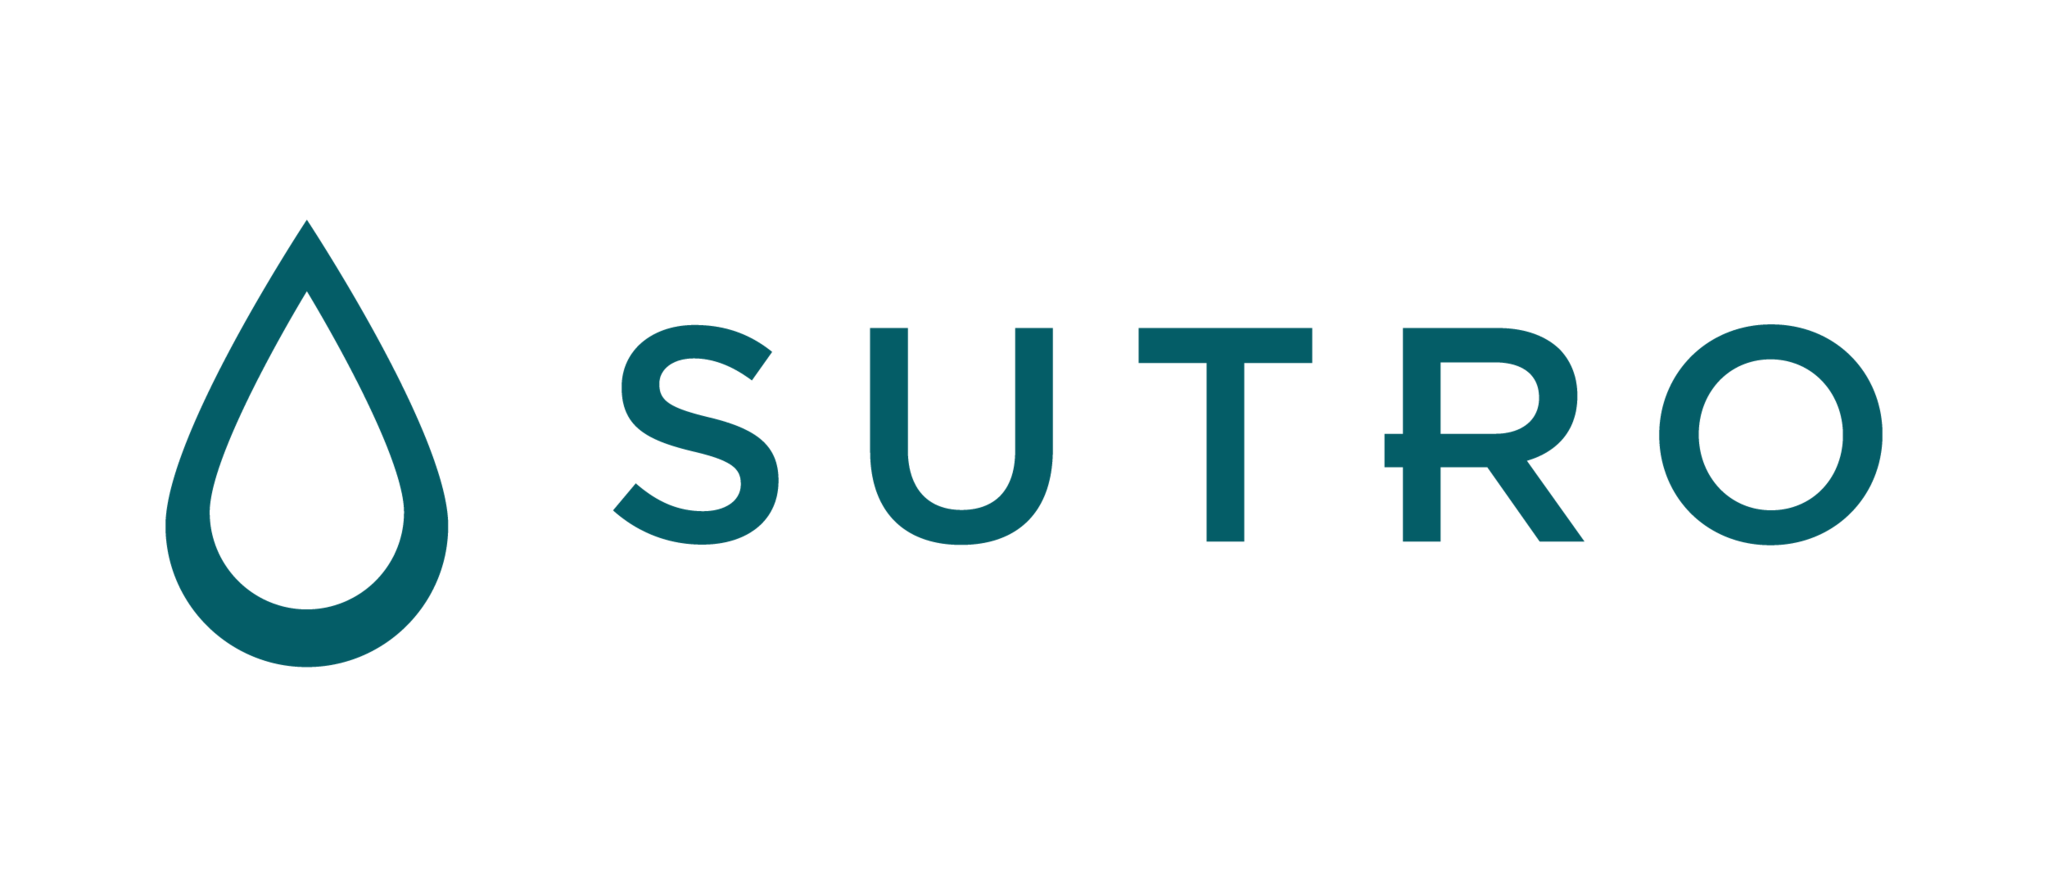 Sutro allows you to measure, monitor, and buy supplies on our marketplace without having to leave the comfort of your pool or spa.